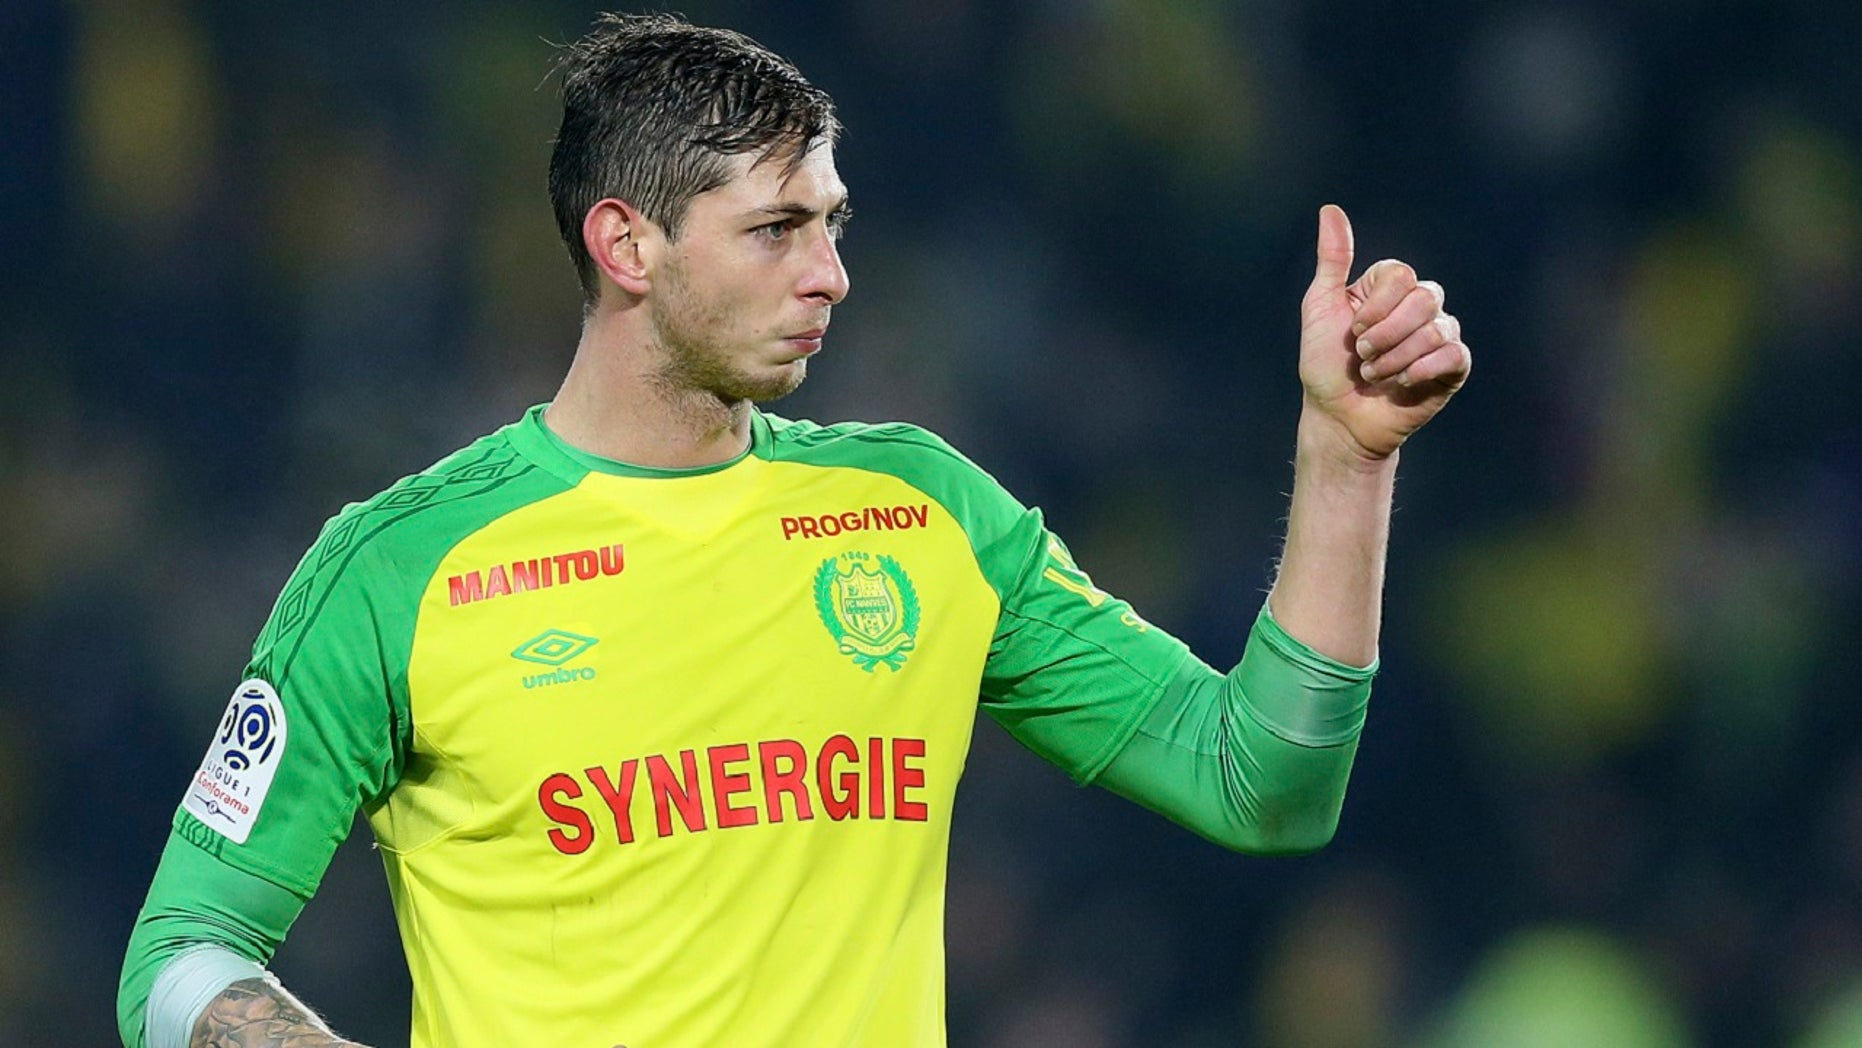 Argentine soccer player Emiliano Sala, of the FC Nantes club, western France, gives a thumbs up during a soccer match against PSG in Nantes, France, Jan. 14, 2018. (Associated Press)